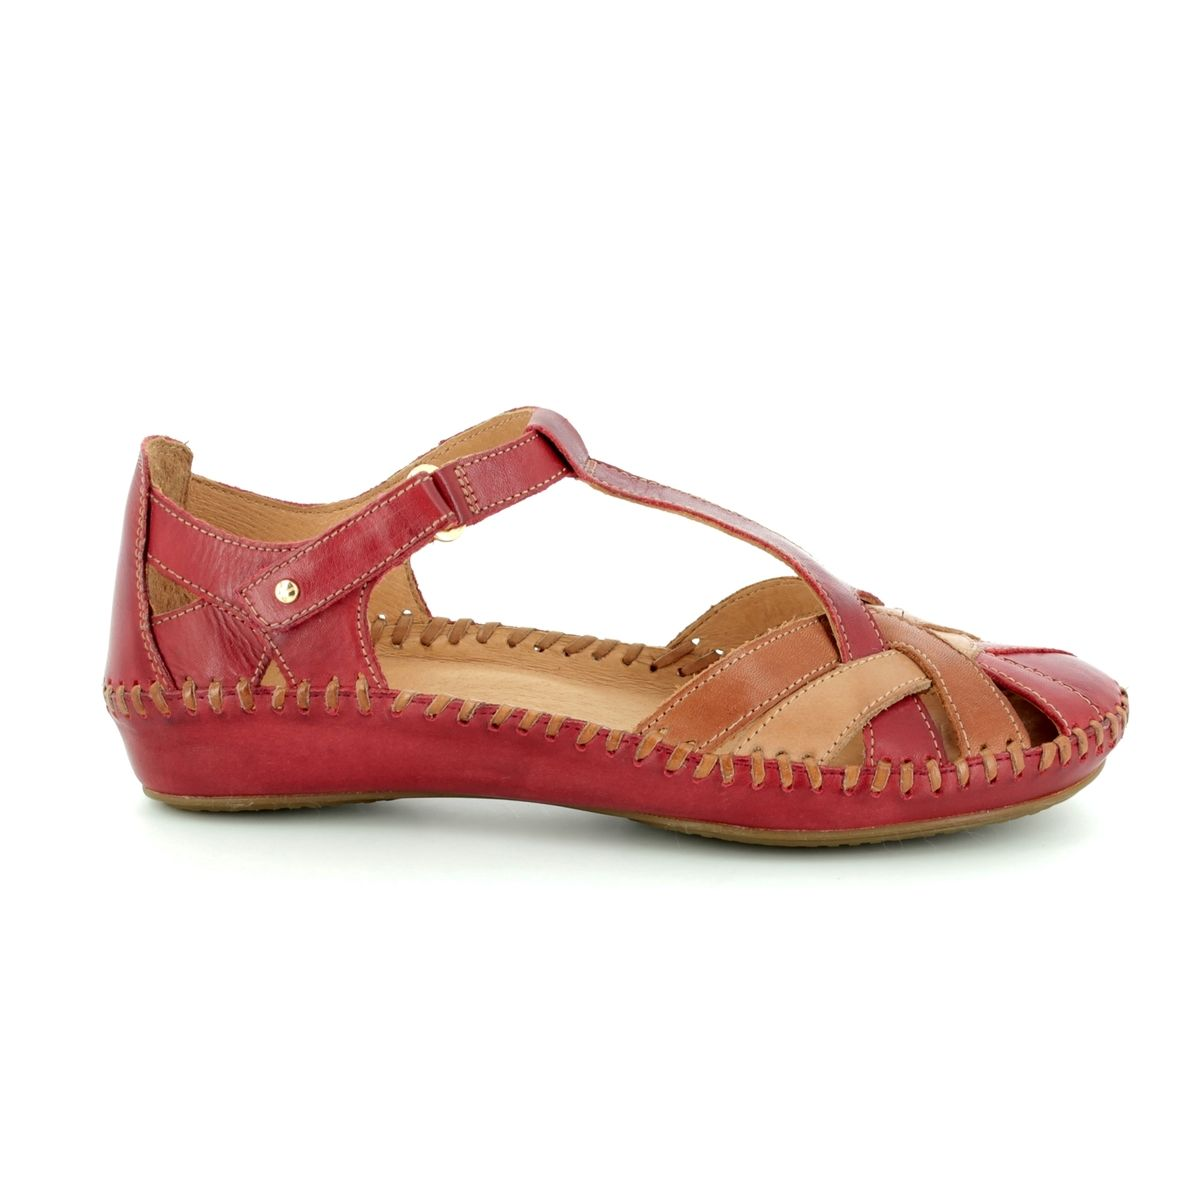 d1d1252d95cfd Pikolinos Closed Toe Sandals - RED TAN - 6550732 C5 VALLARTA WEAVE